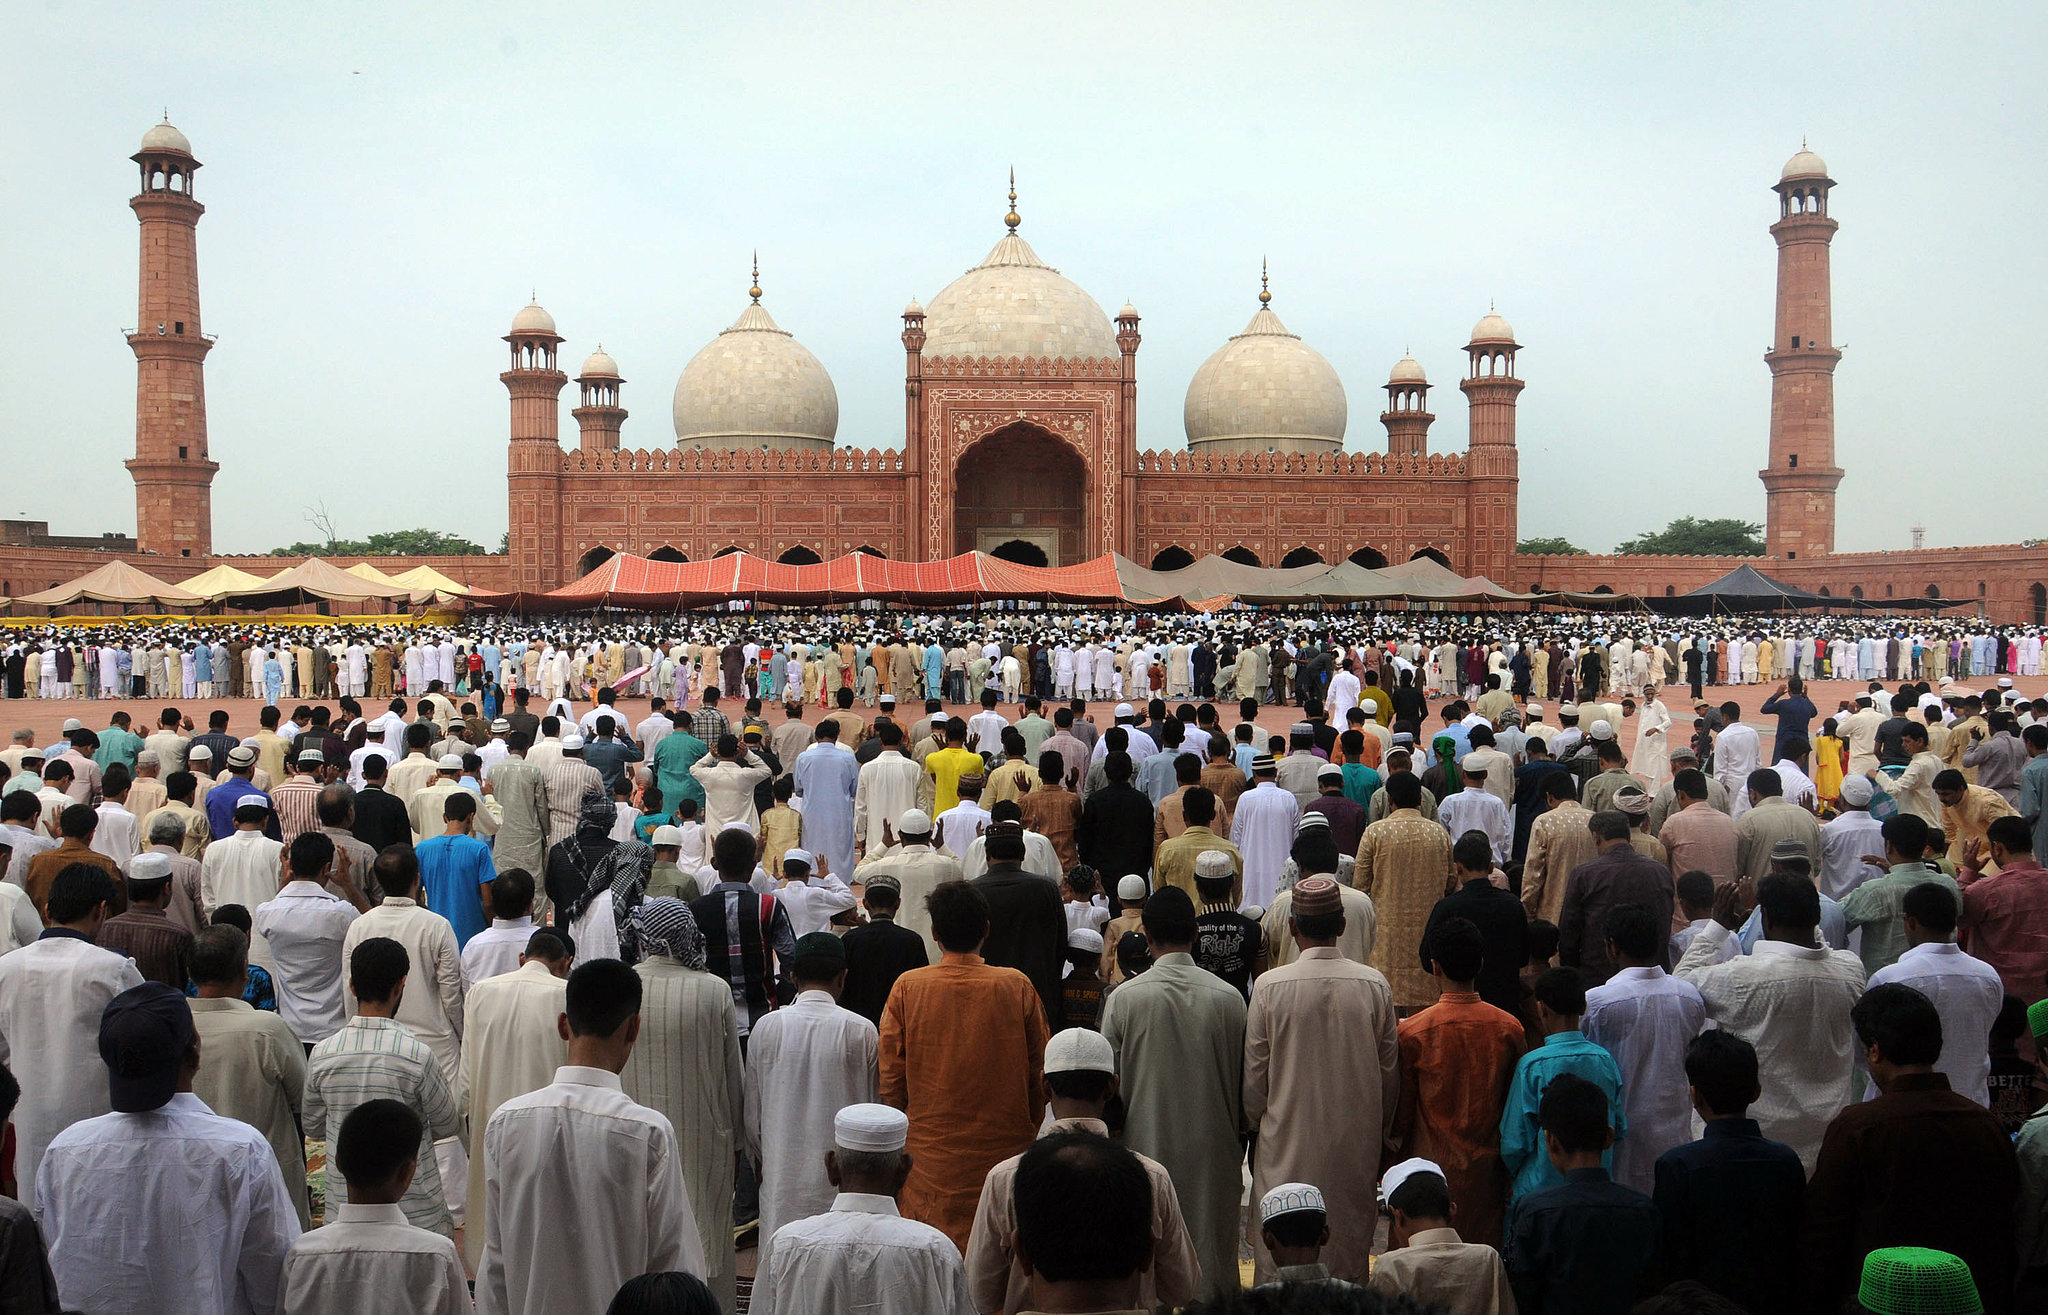 Muslims gathered at the Badshahi Masjid Mosque in Pakistan to offer Eid al-Fitr prayers at the end of Ramadan.